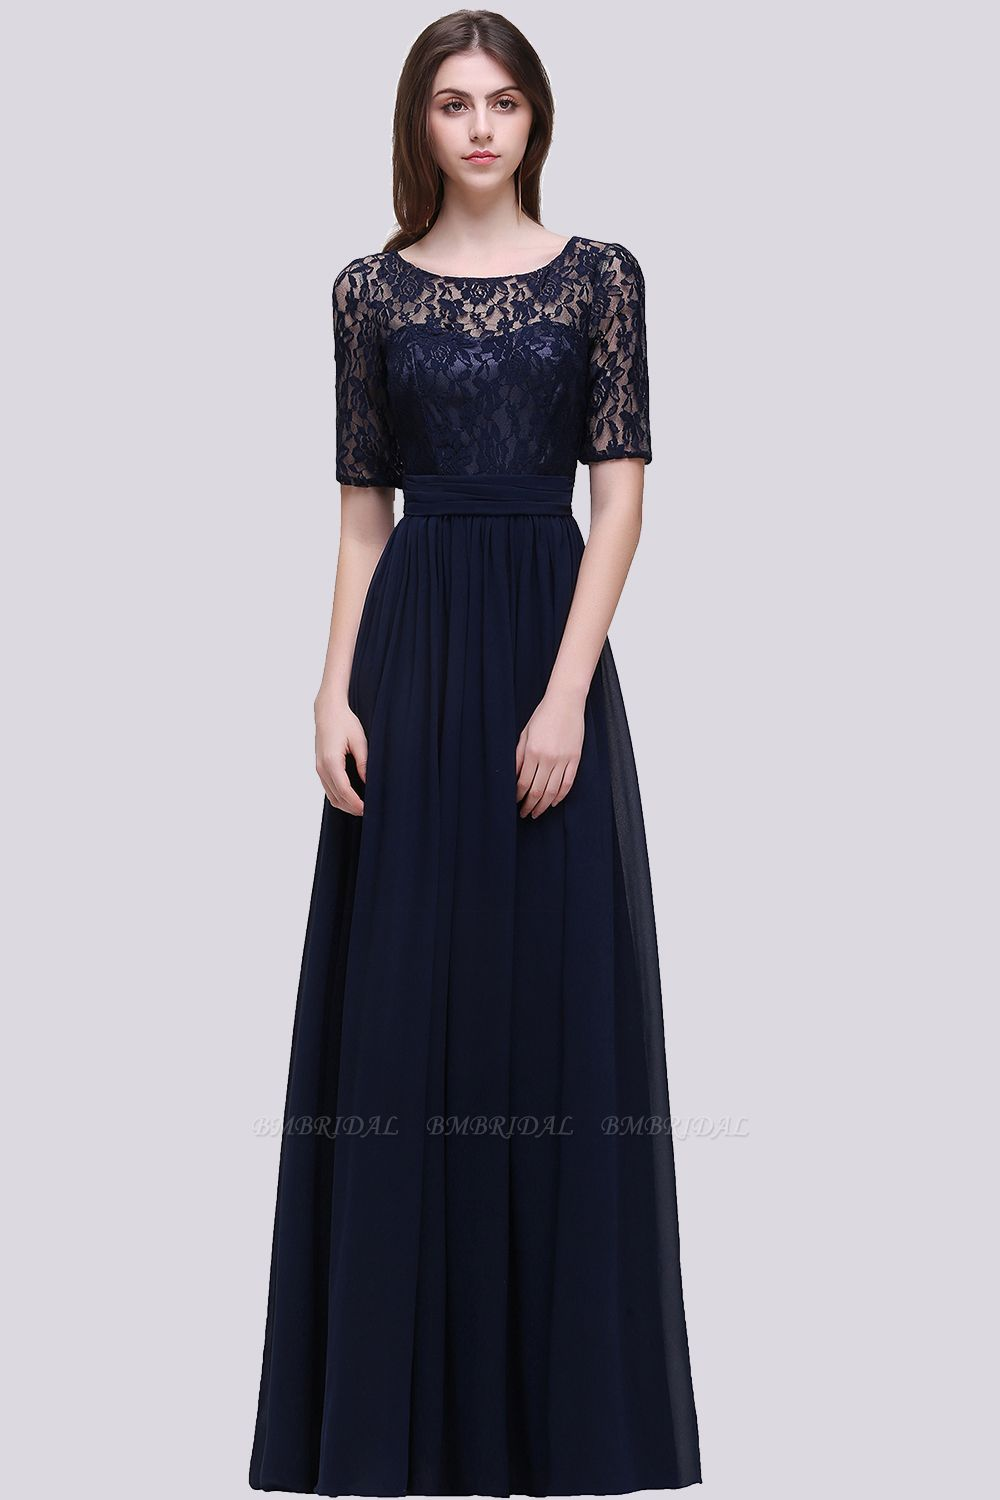 Affordable Lace Scoop Dark Navy Bridesmaid Dresses with Half-Sleeves